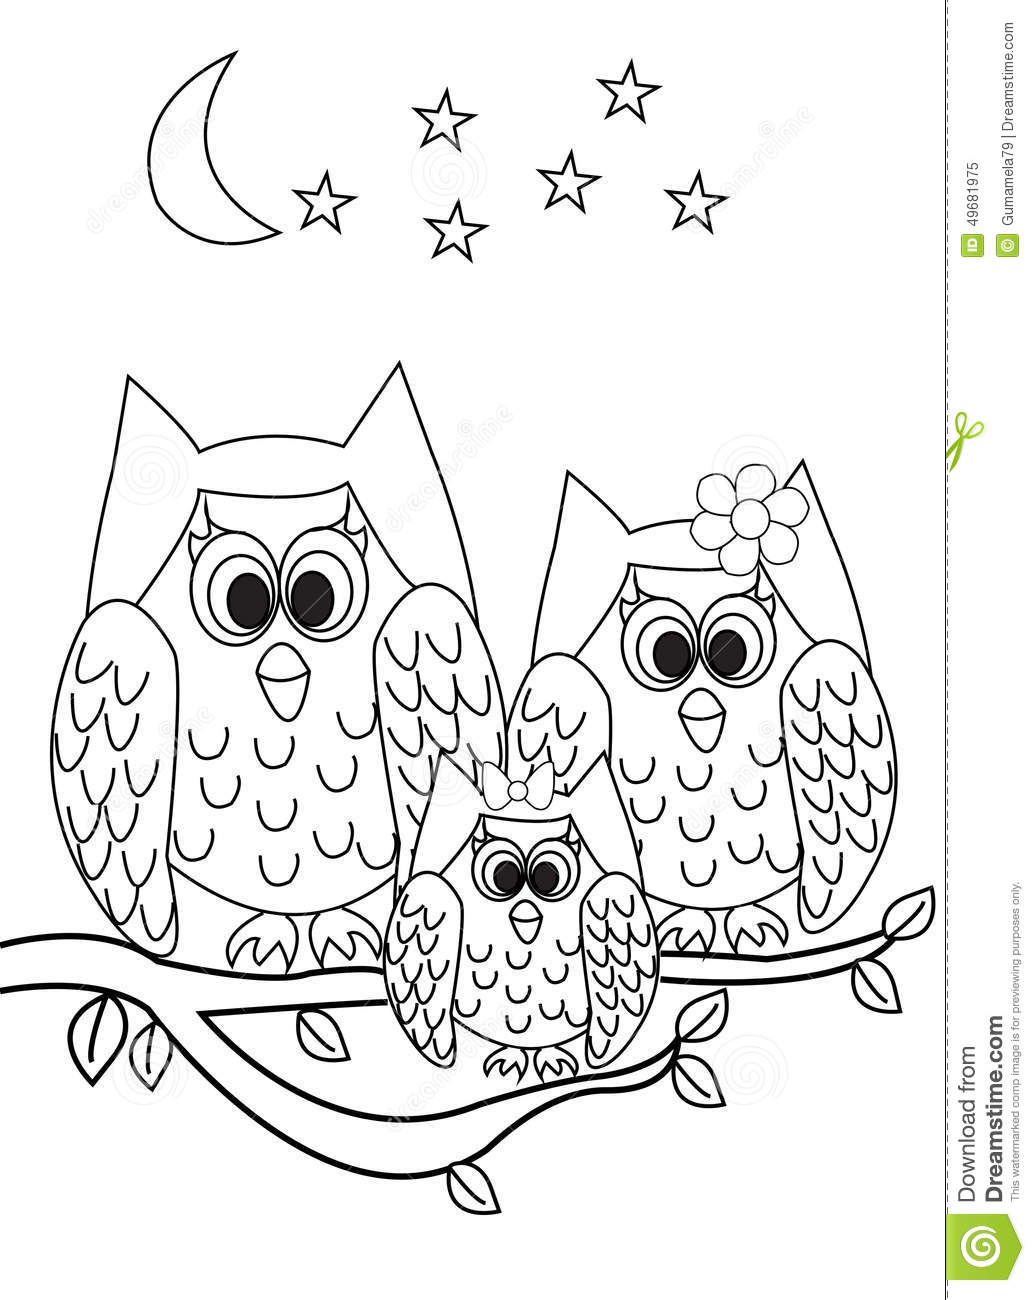 Owl Worksheet For First Grade